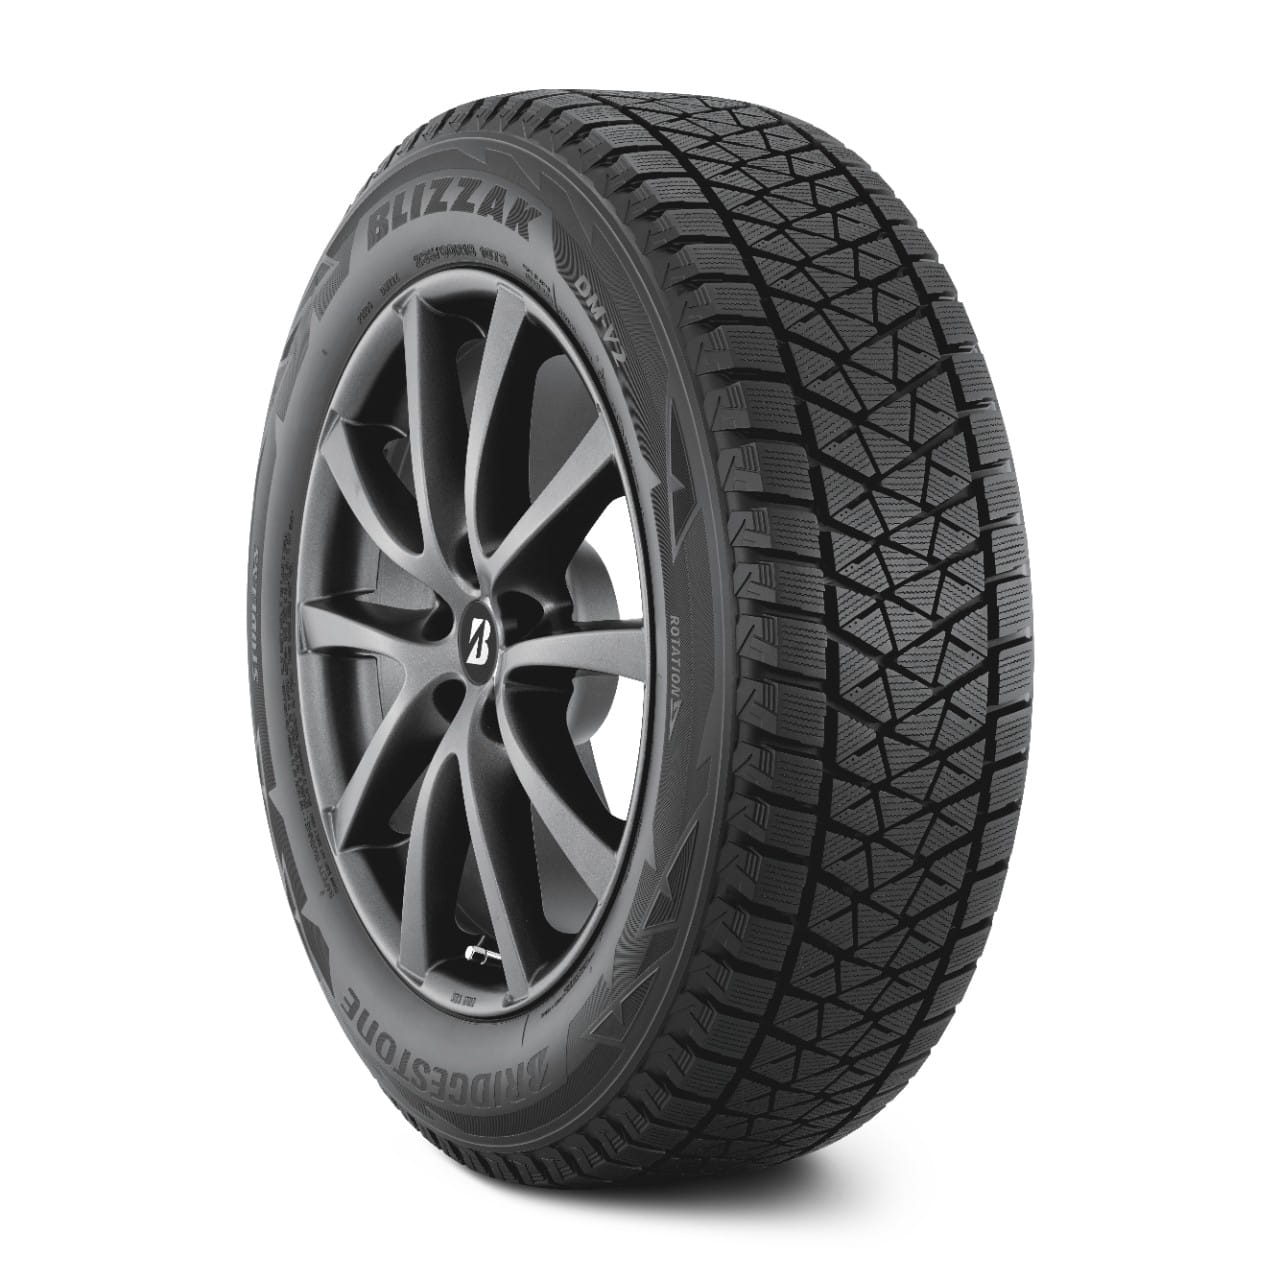 235/65R18 106S XL BRIDGESTONE DM-V2